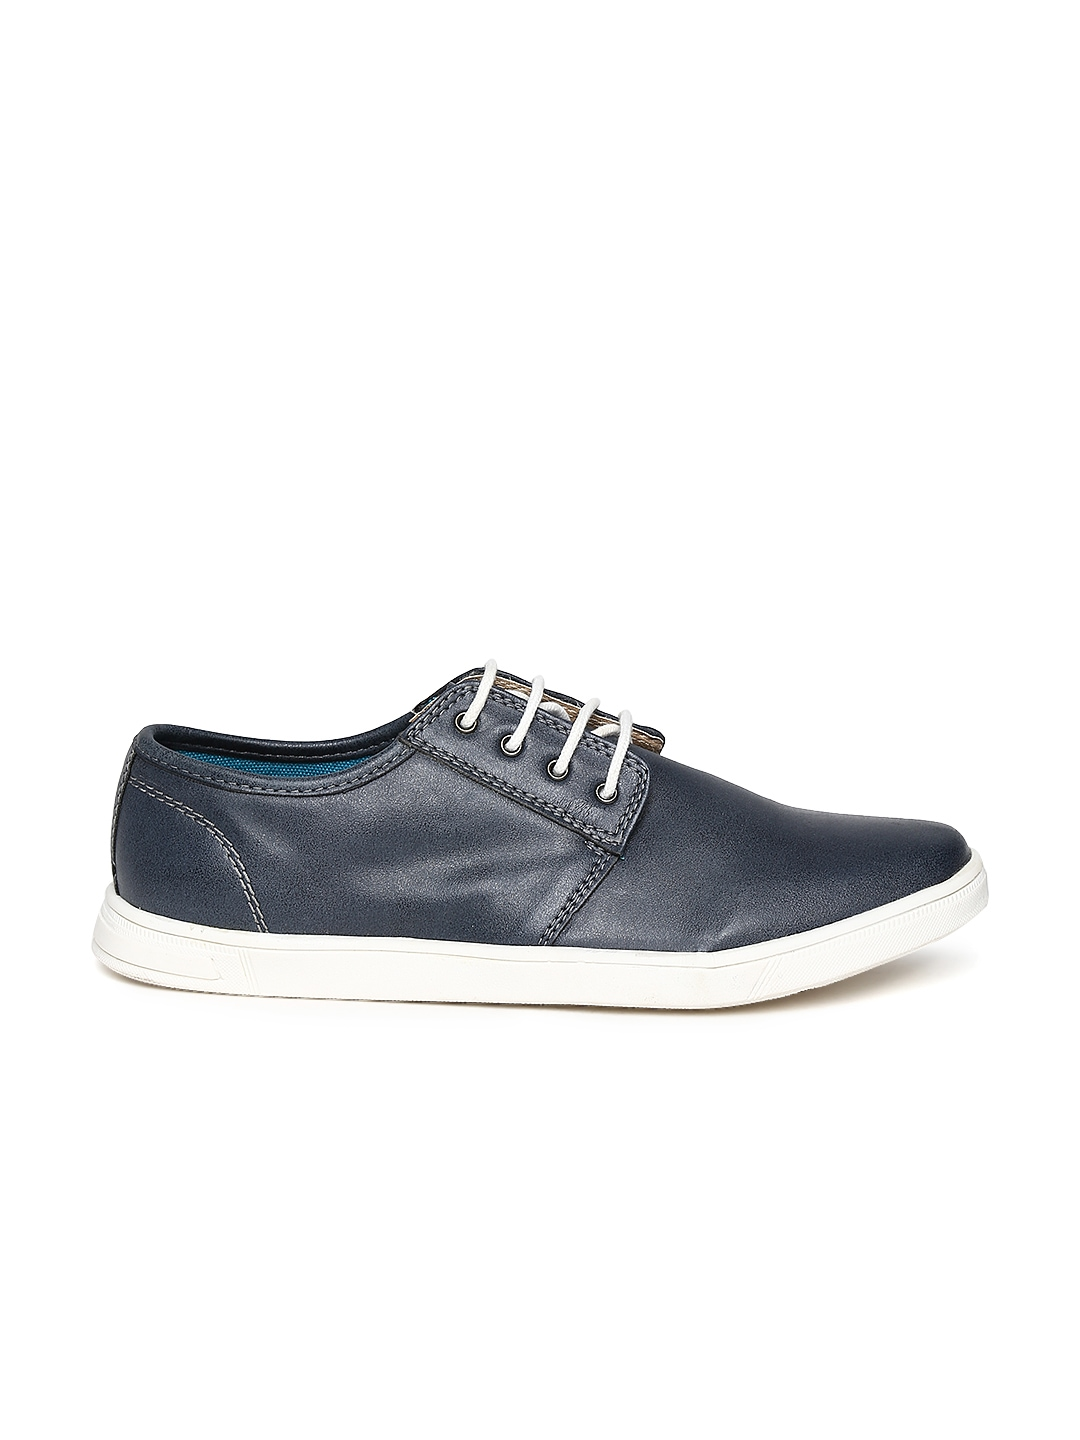 Knotty Derby Blue Shoes